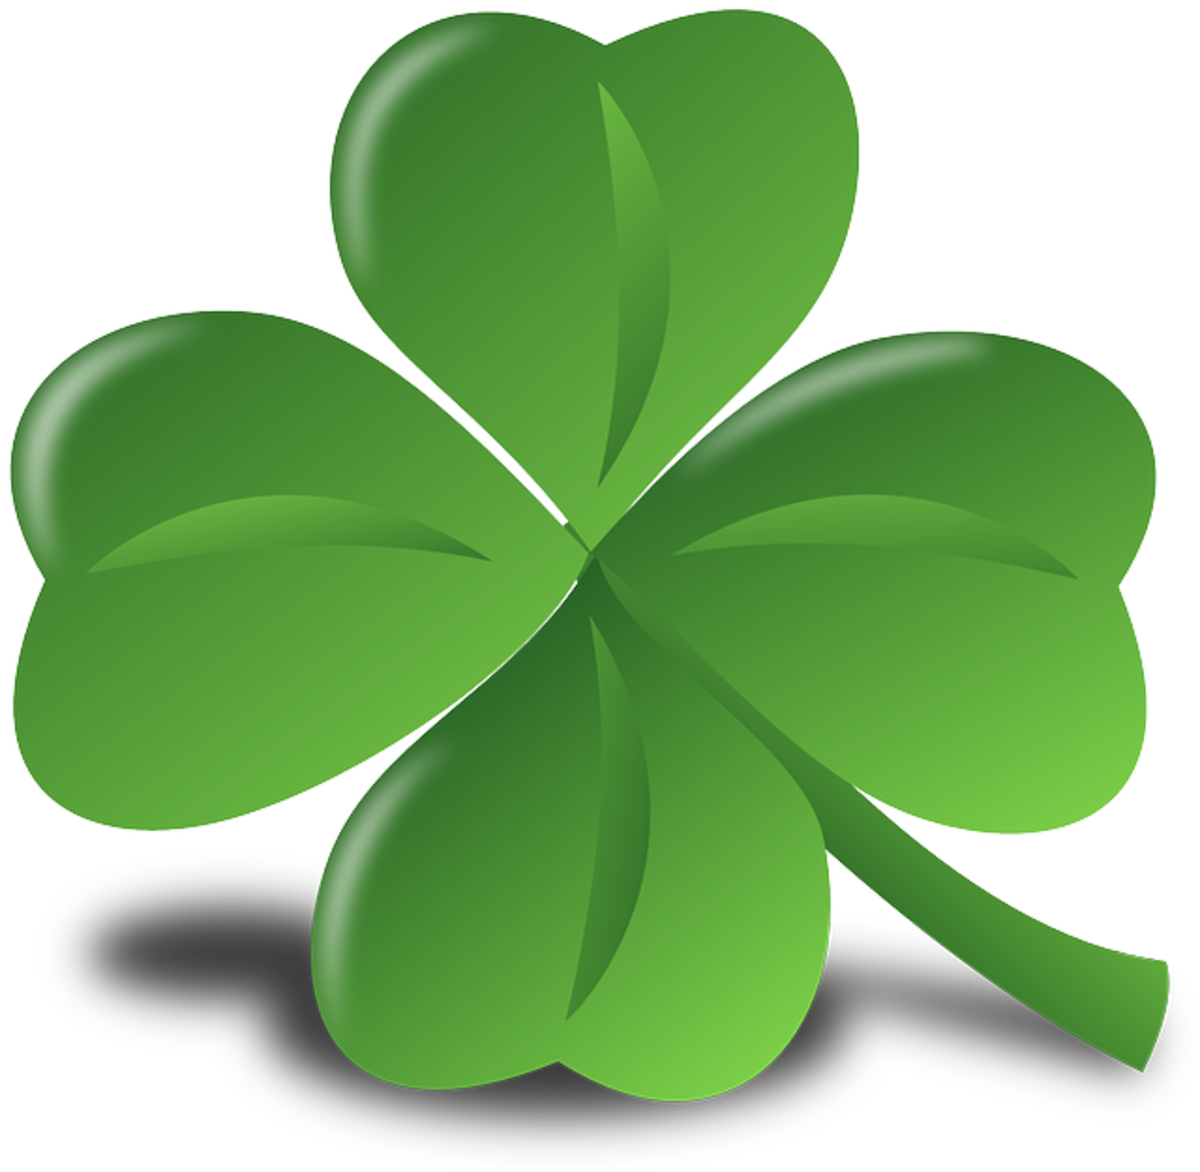 Four-leaf clover. A symbol of good luck.